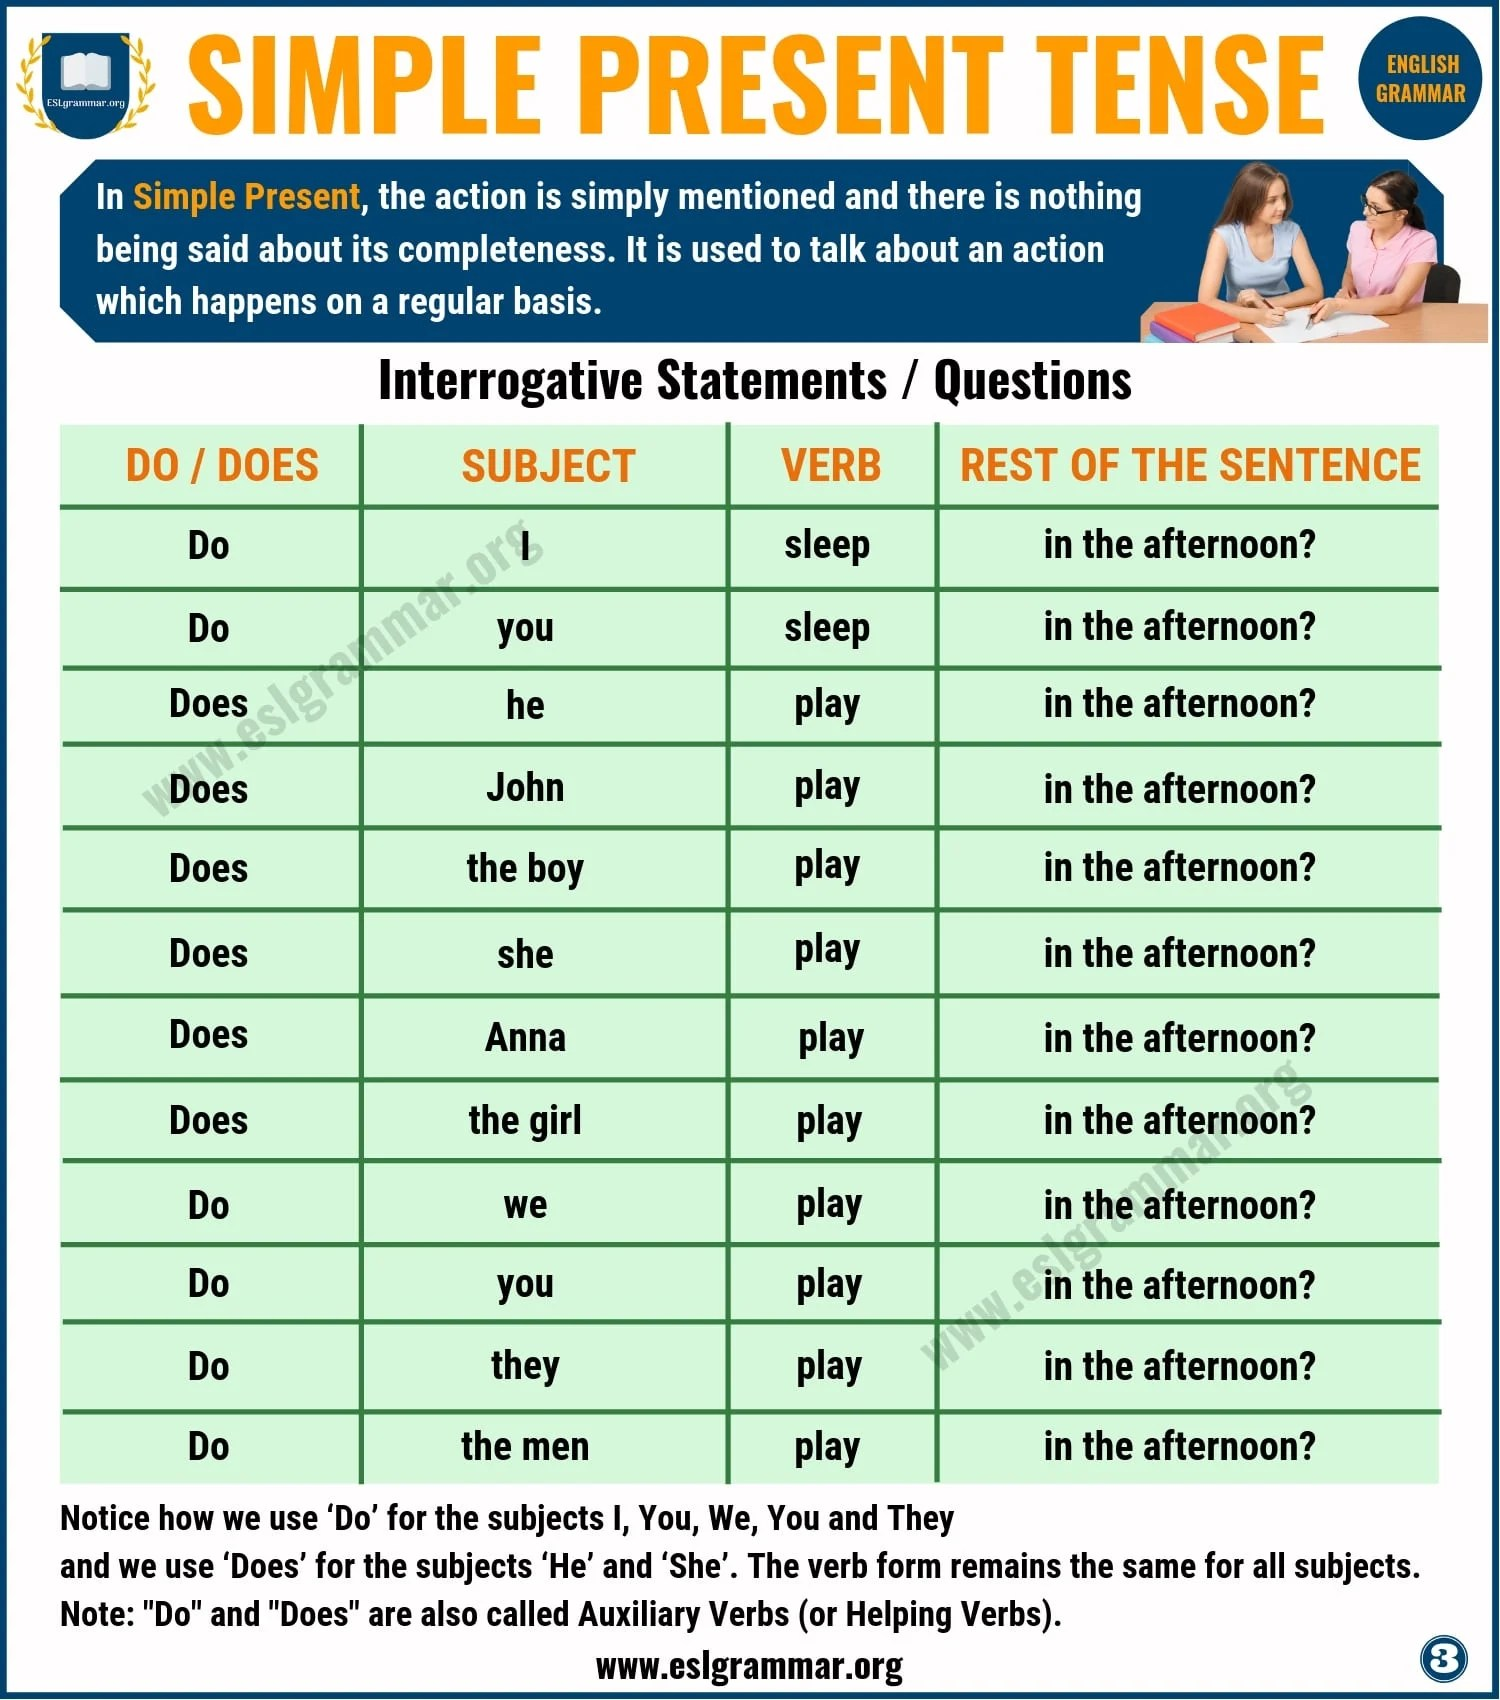 Simple Present Tense Definition And Useful Examples